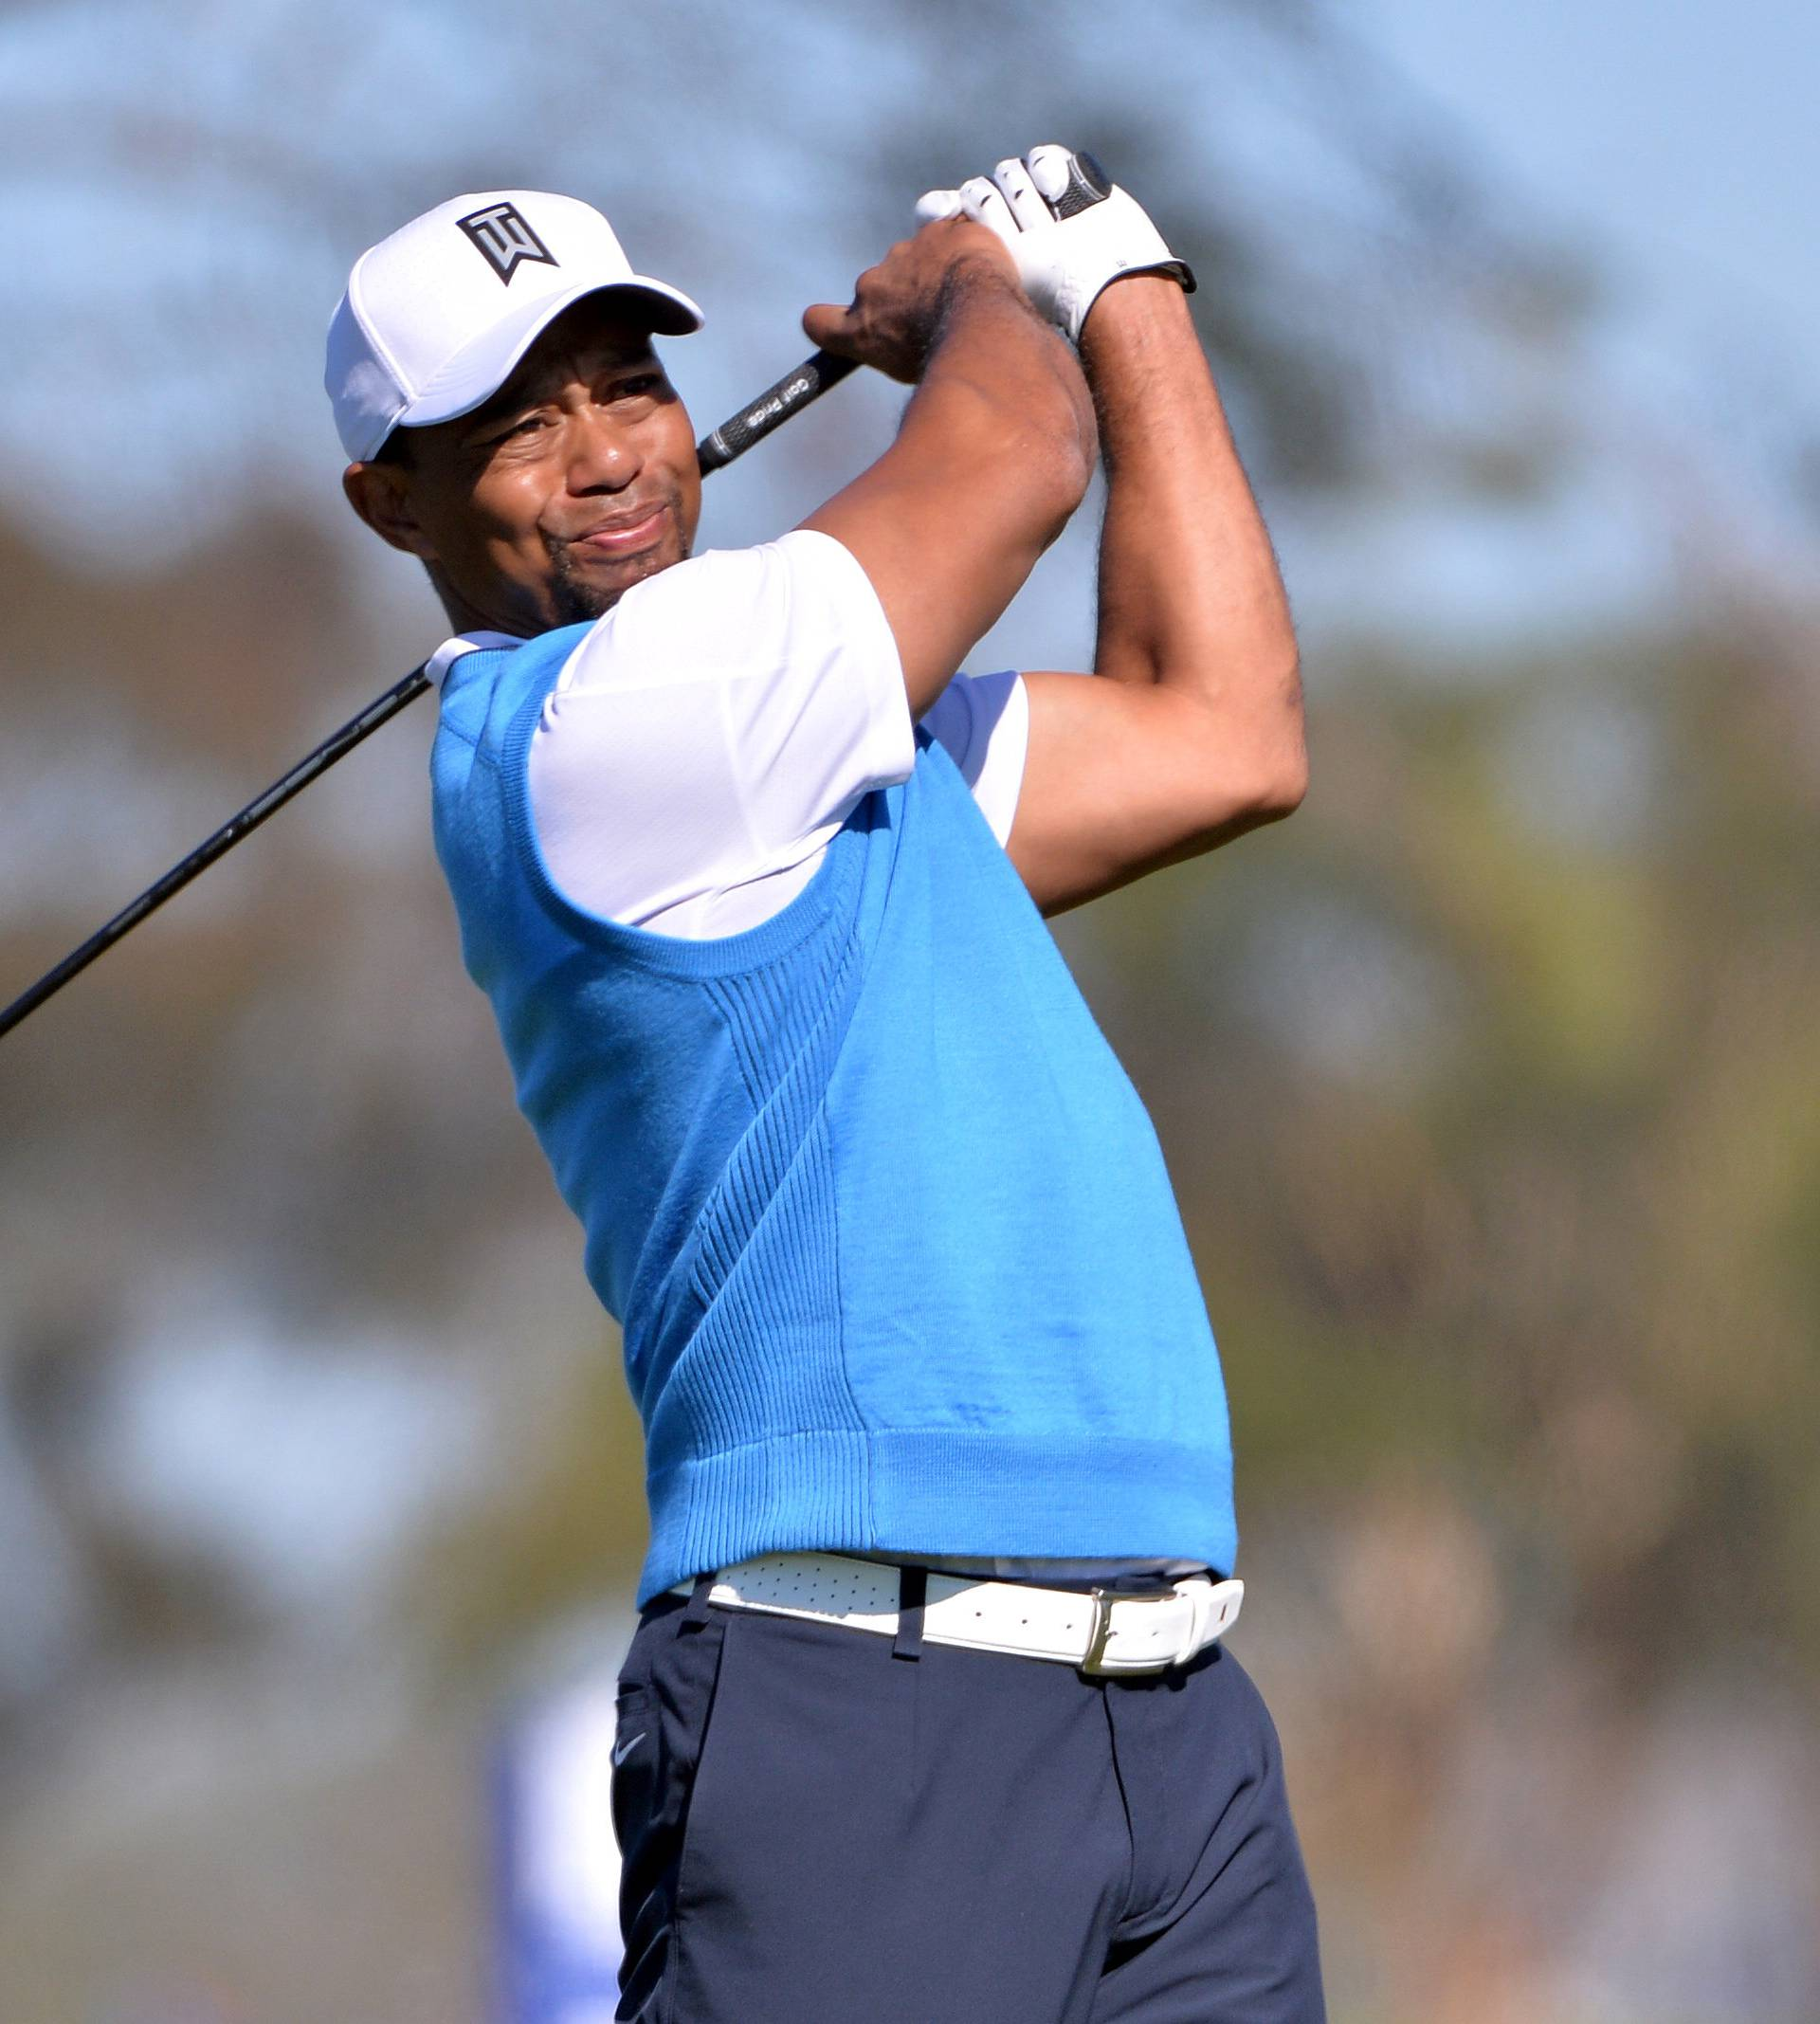 FILE PHOTO: Tiger Woods tees off the 5th hole during the first round of the Farmers Insurance Open golf tournament in La Jolla